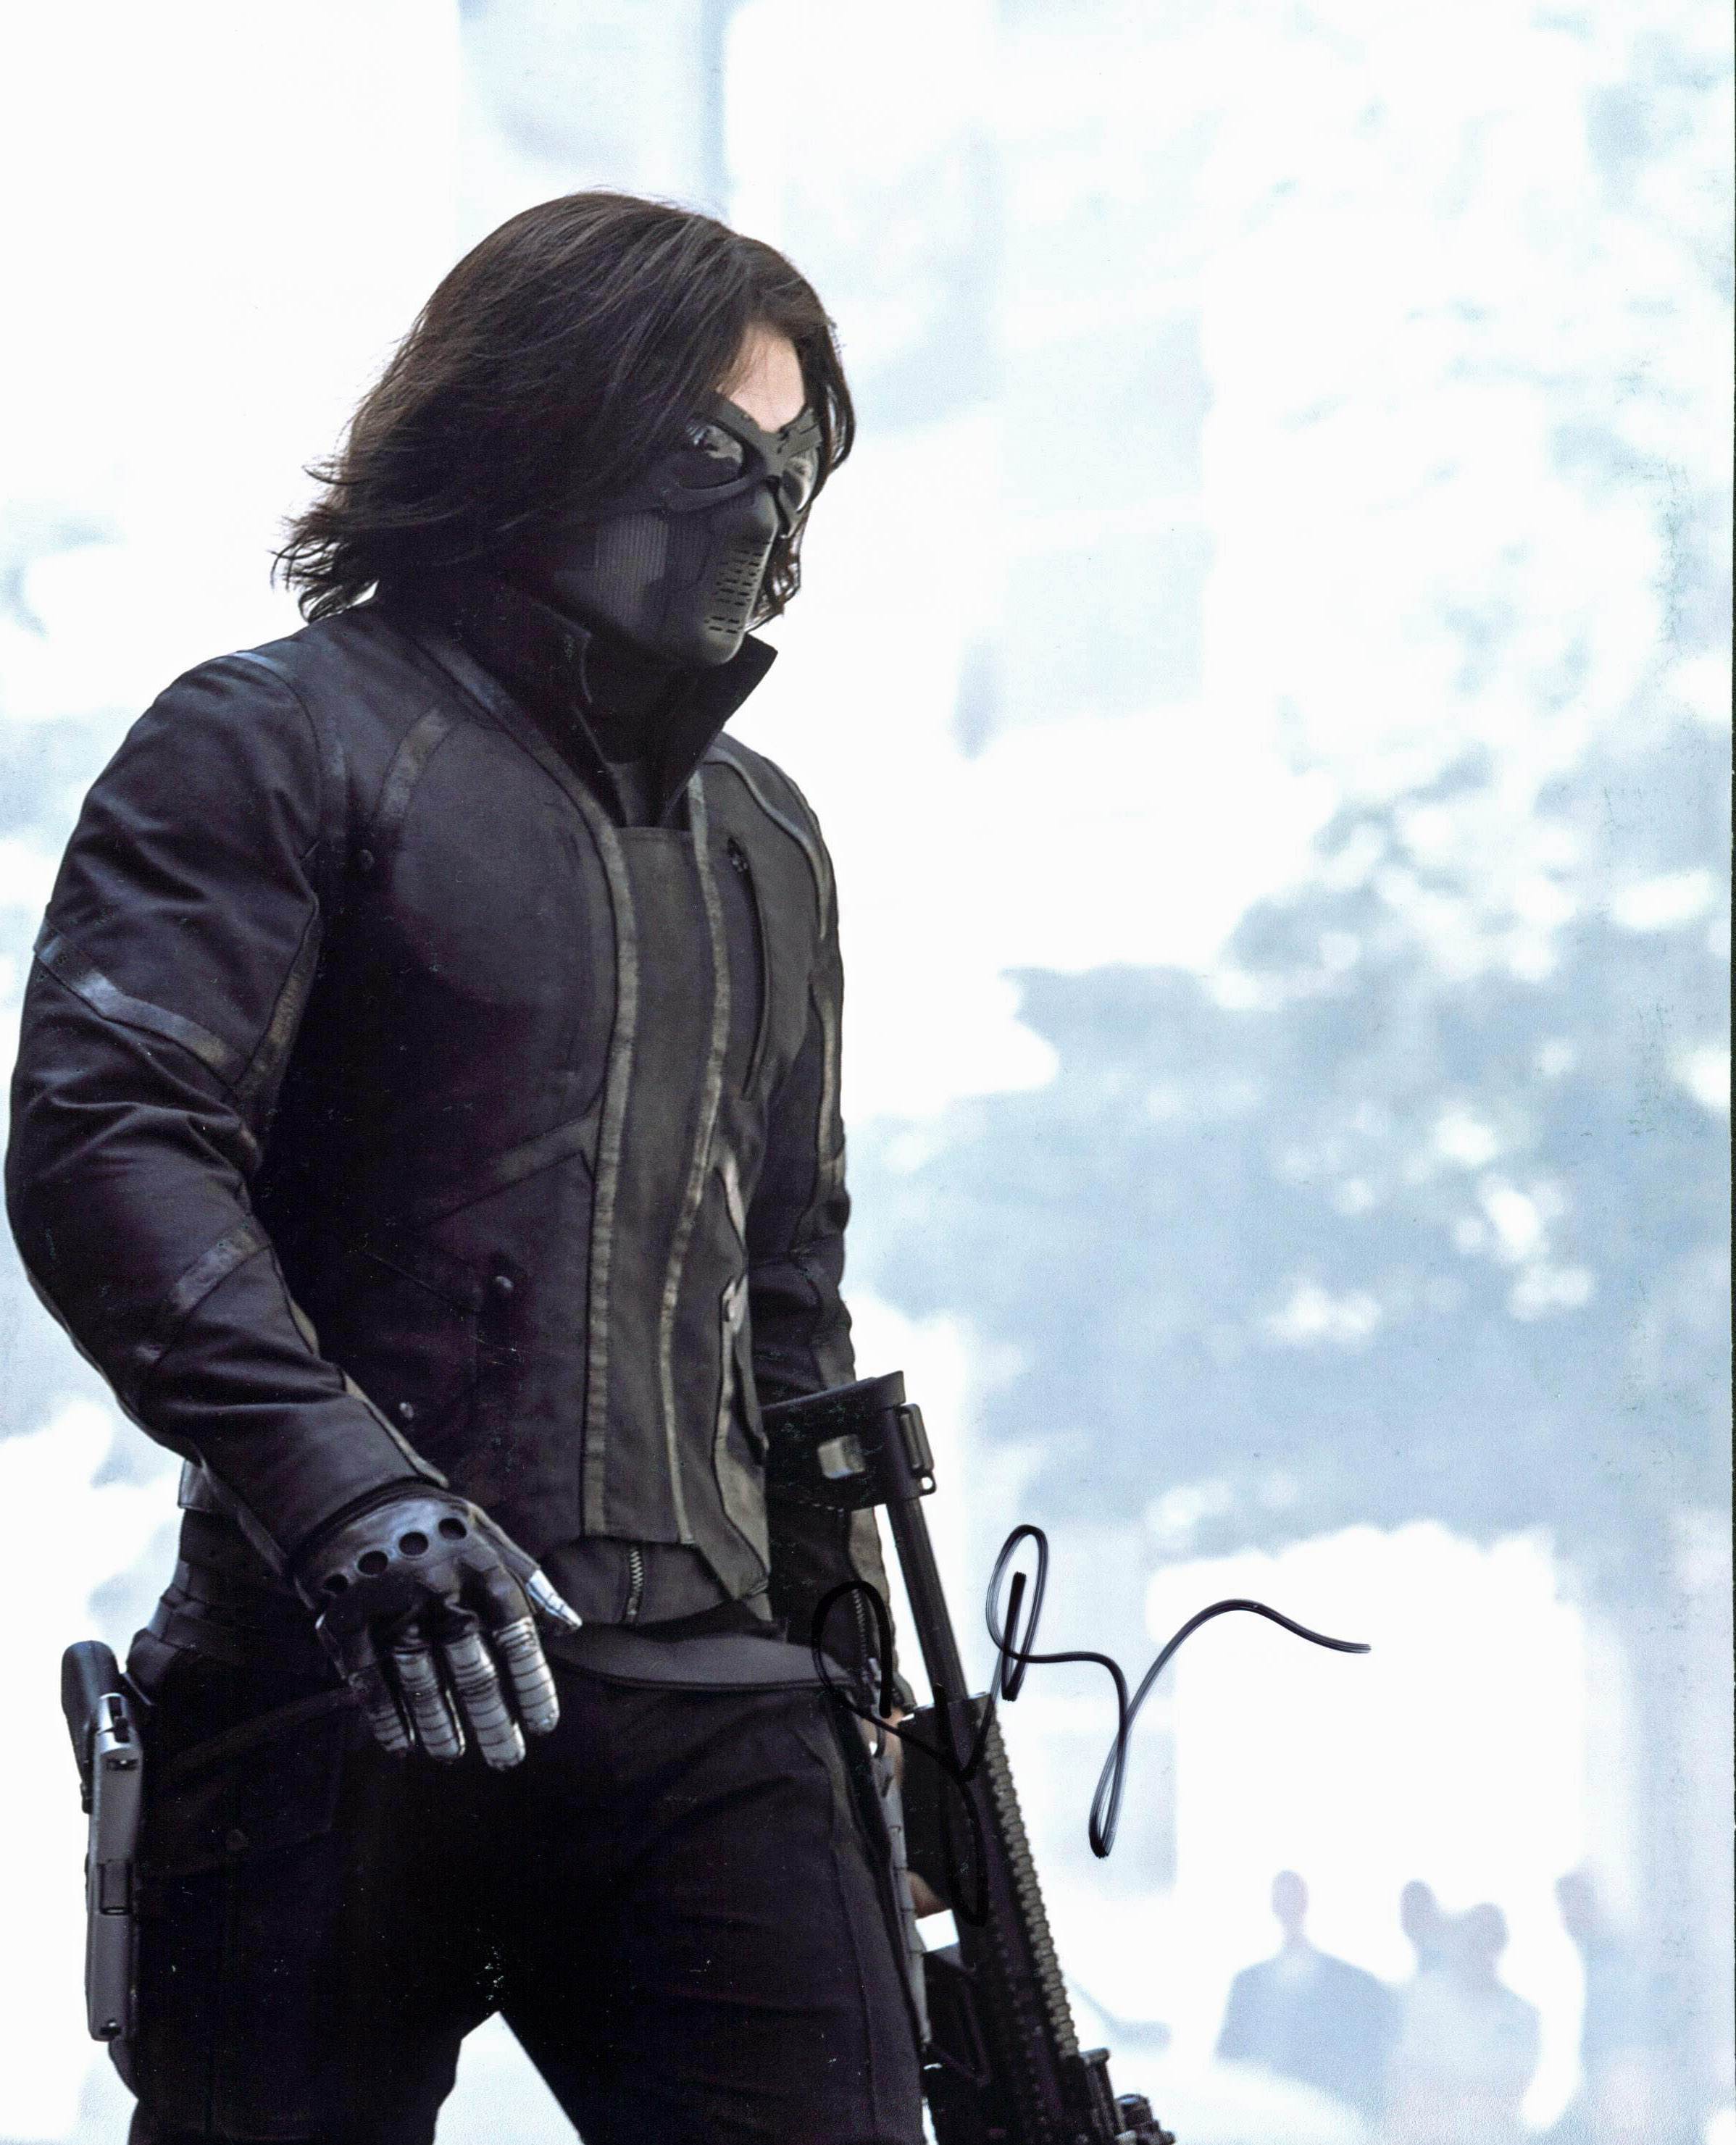 Sebastian Stan Captain America The Winter Soldier Signed 8x10 Photo BAS #C63728